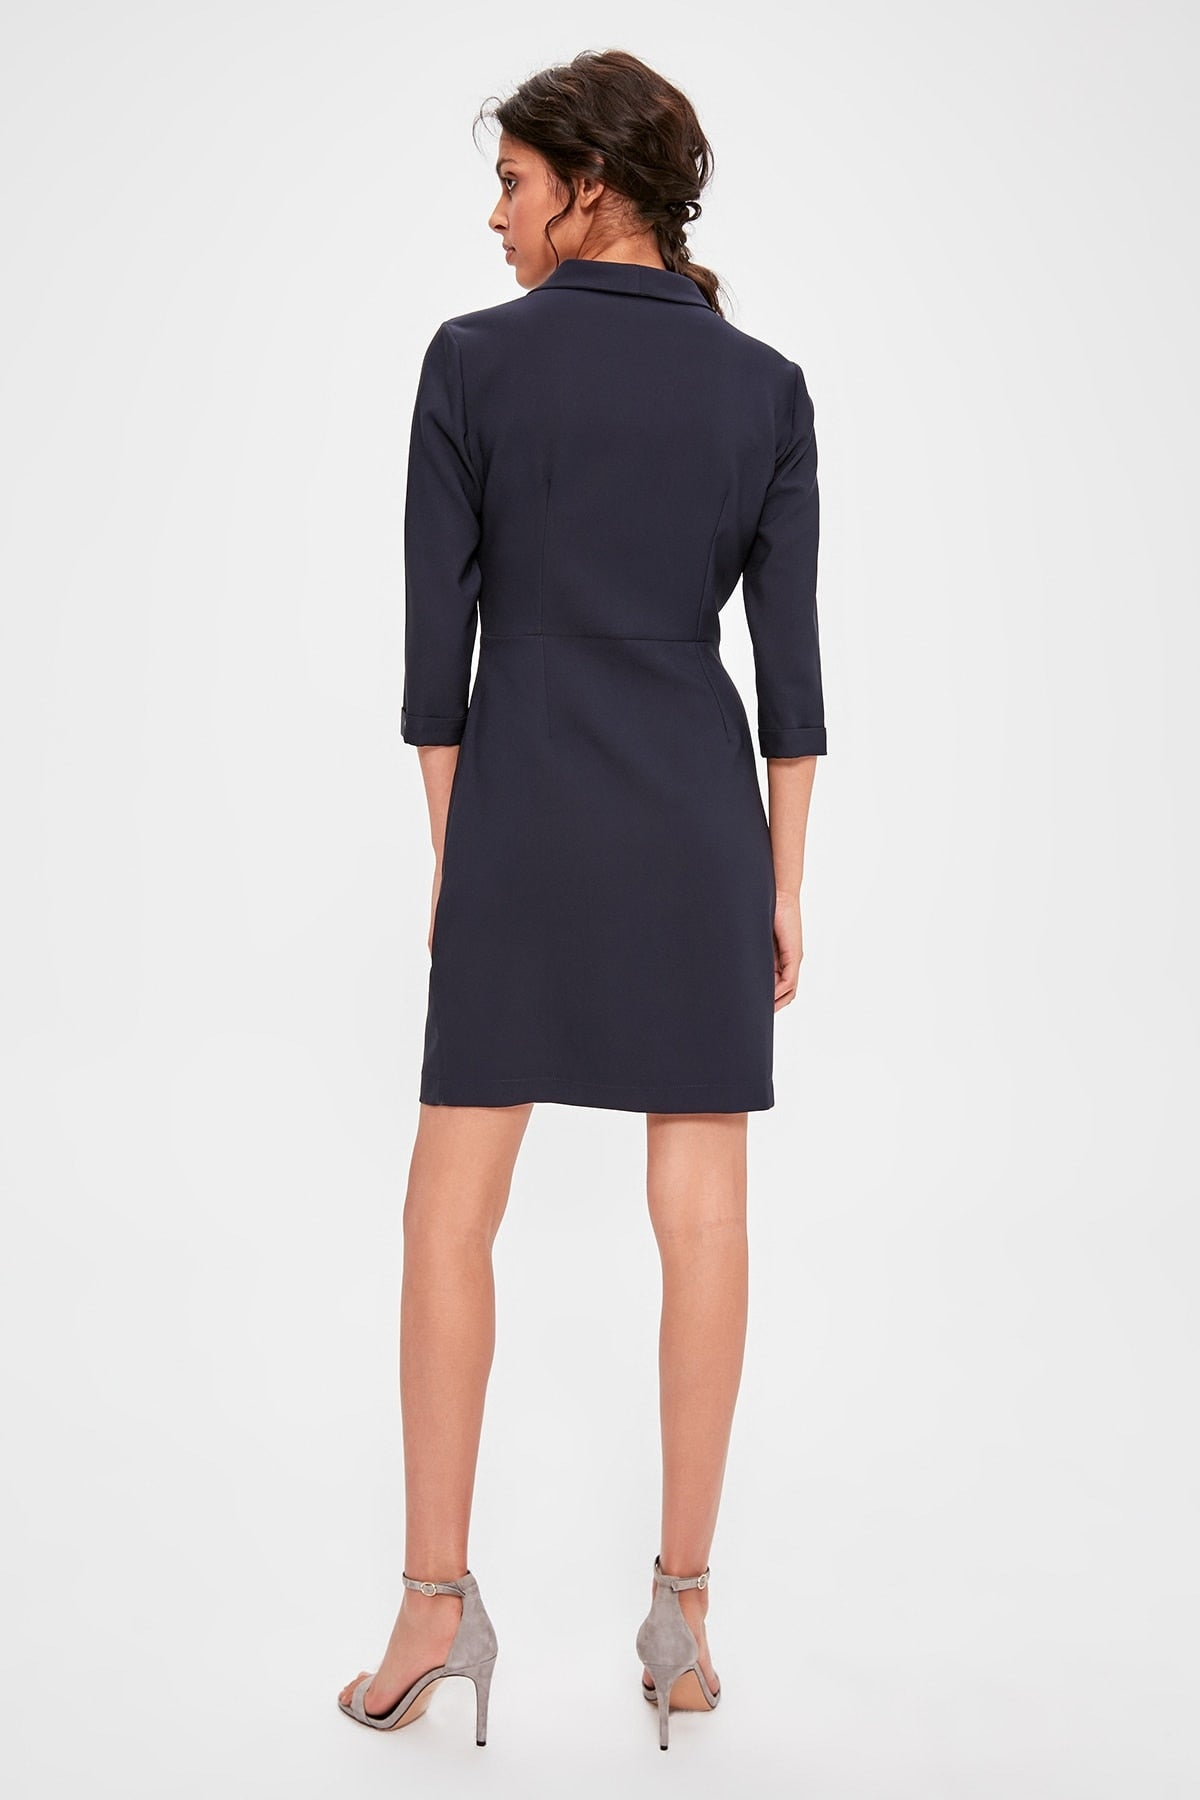 Navy Blue Double Breasted Collar Dress - emuuz.com